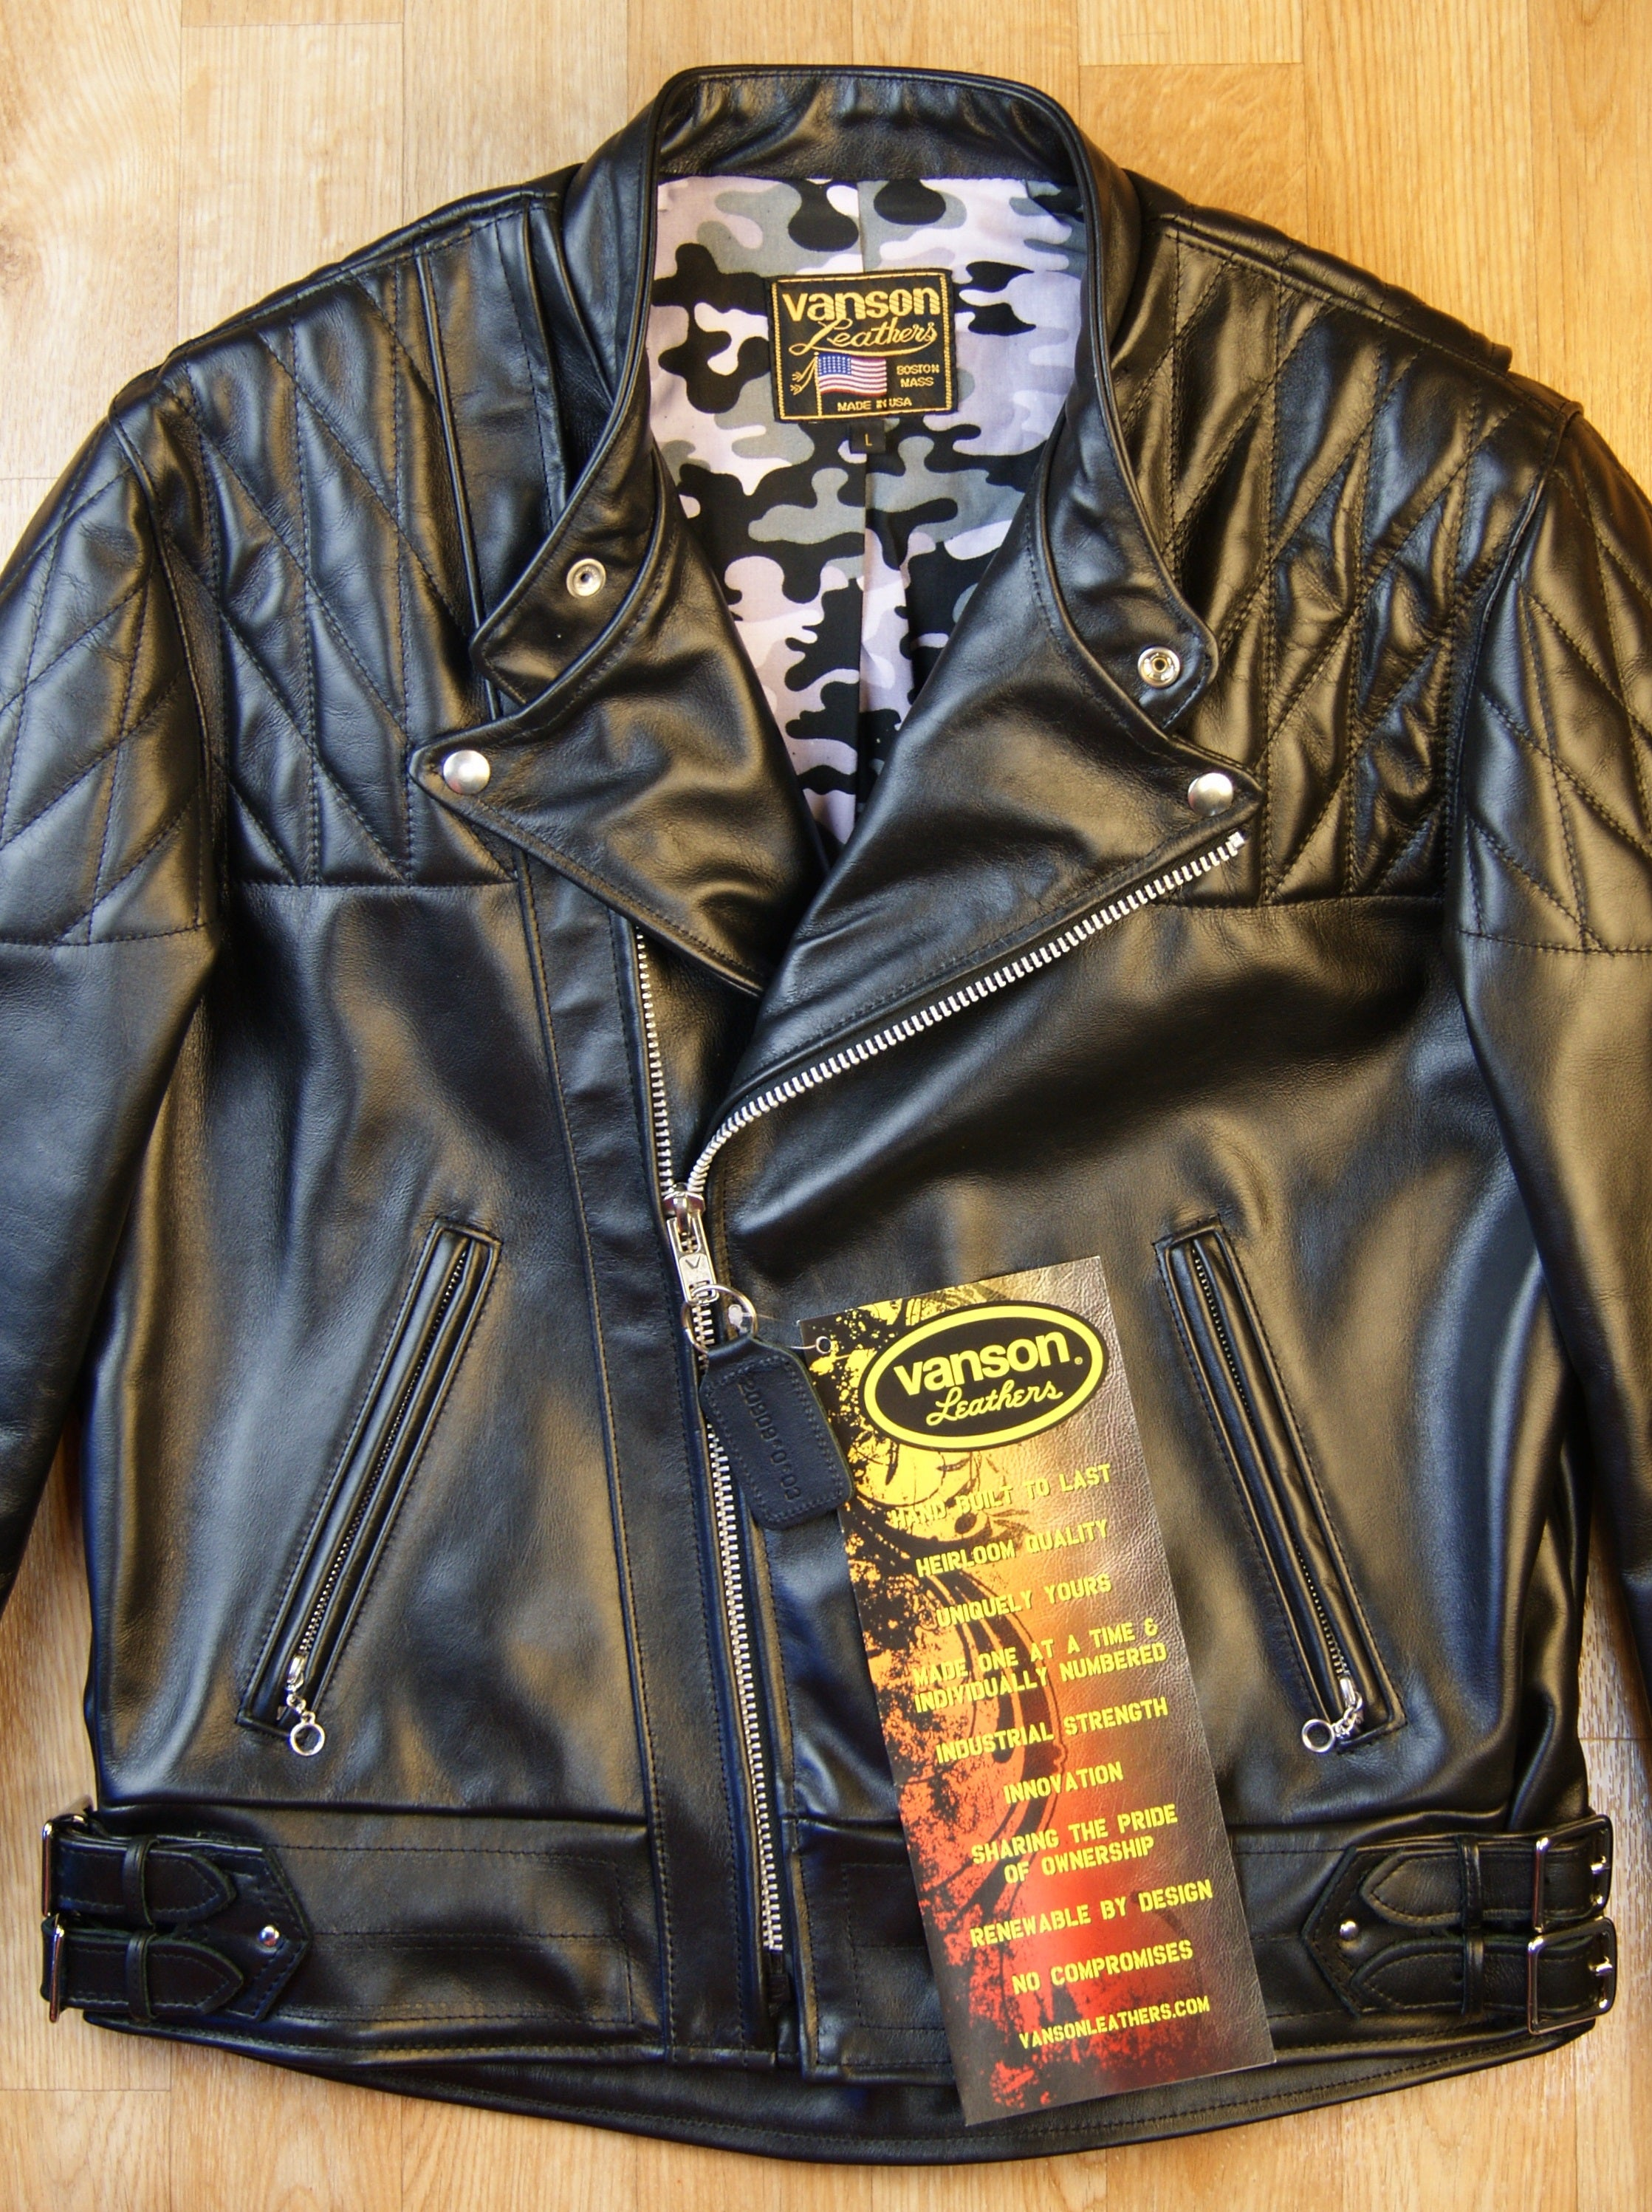 Vanson Chopper Jacket, size Large